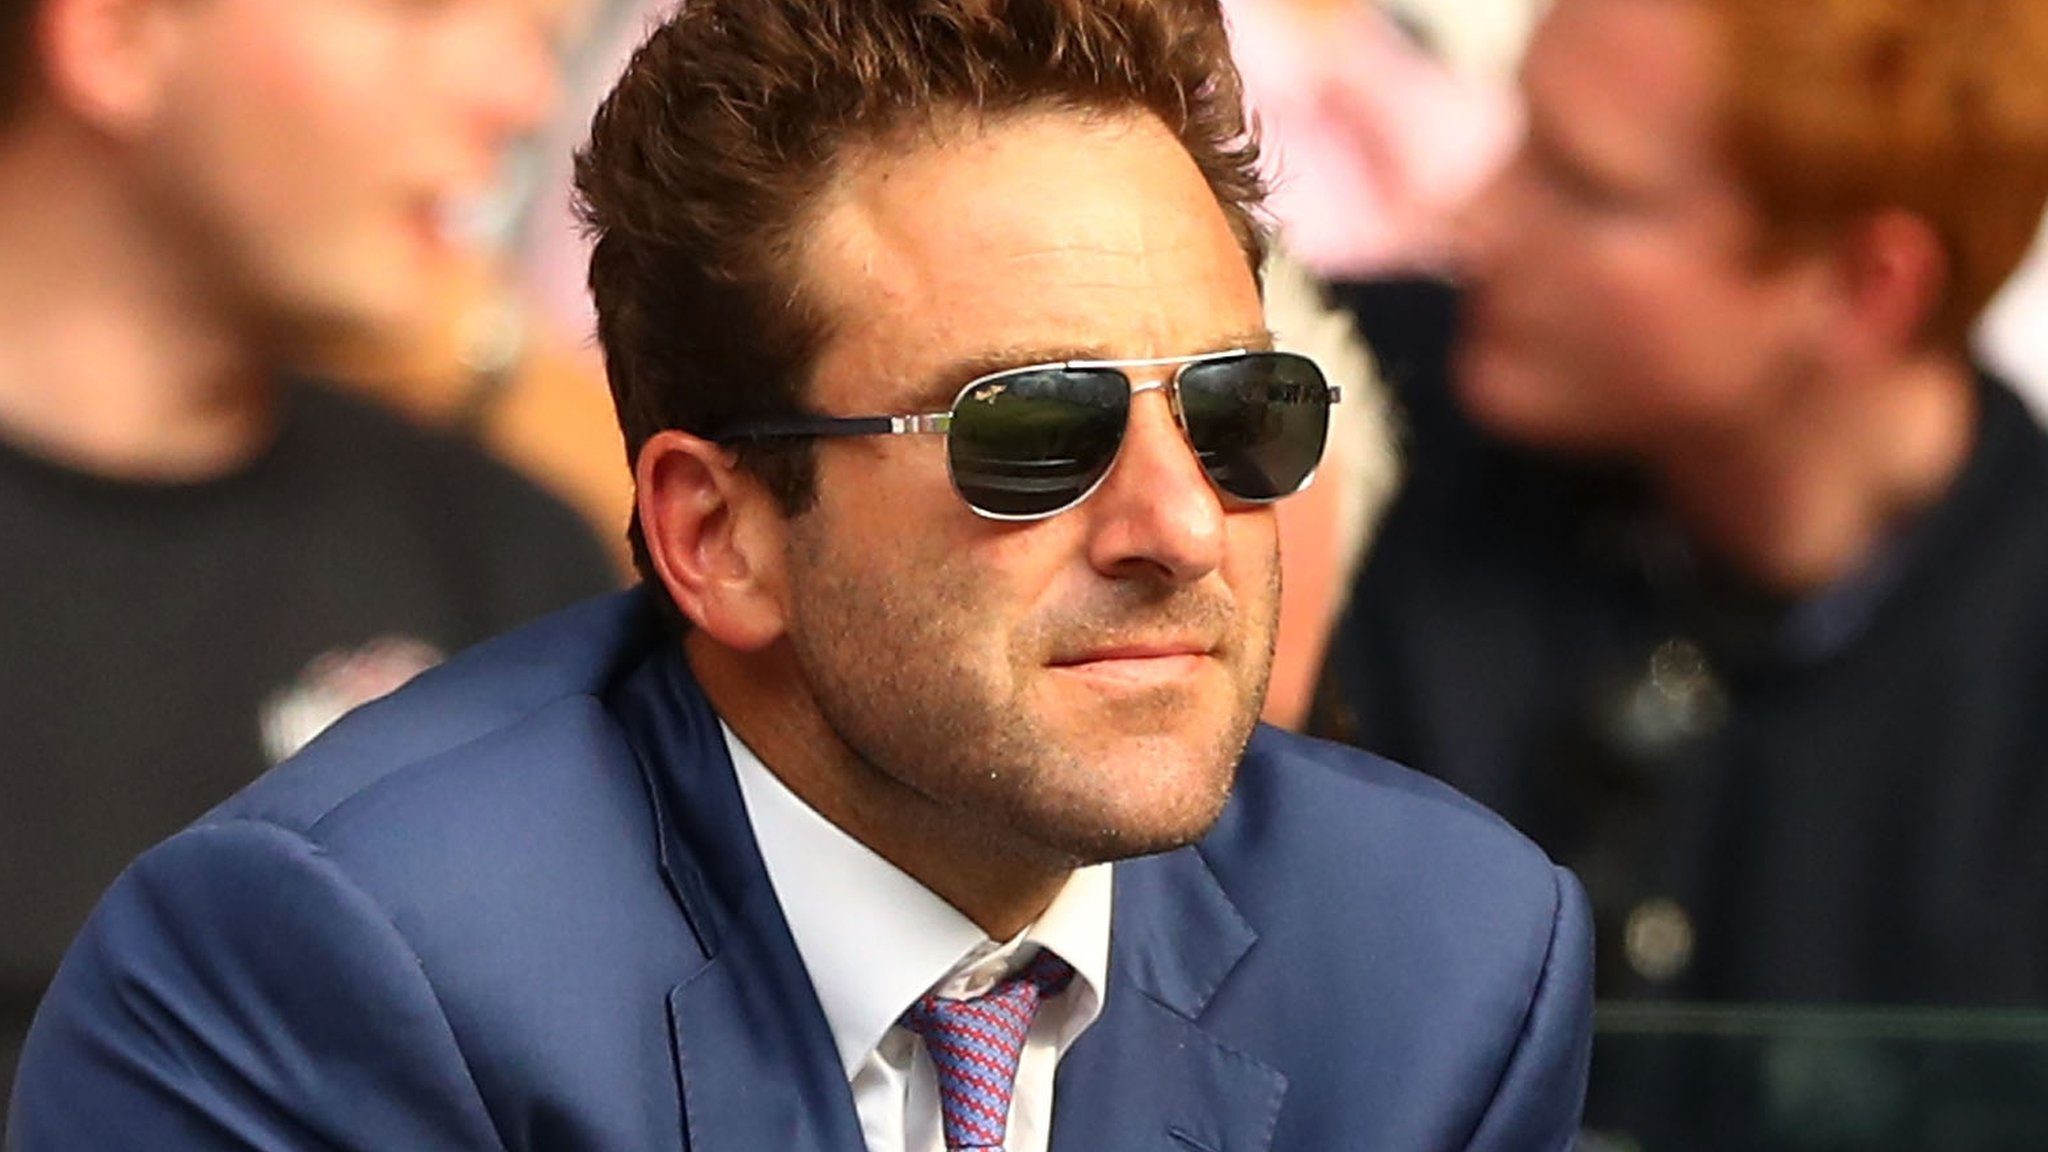 Former mixed double champion Gimelstob charged with assault in LA